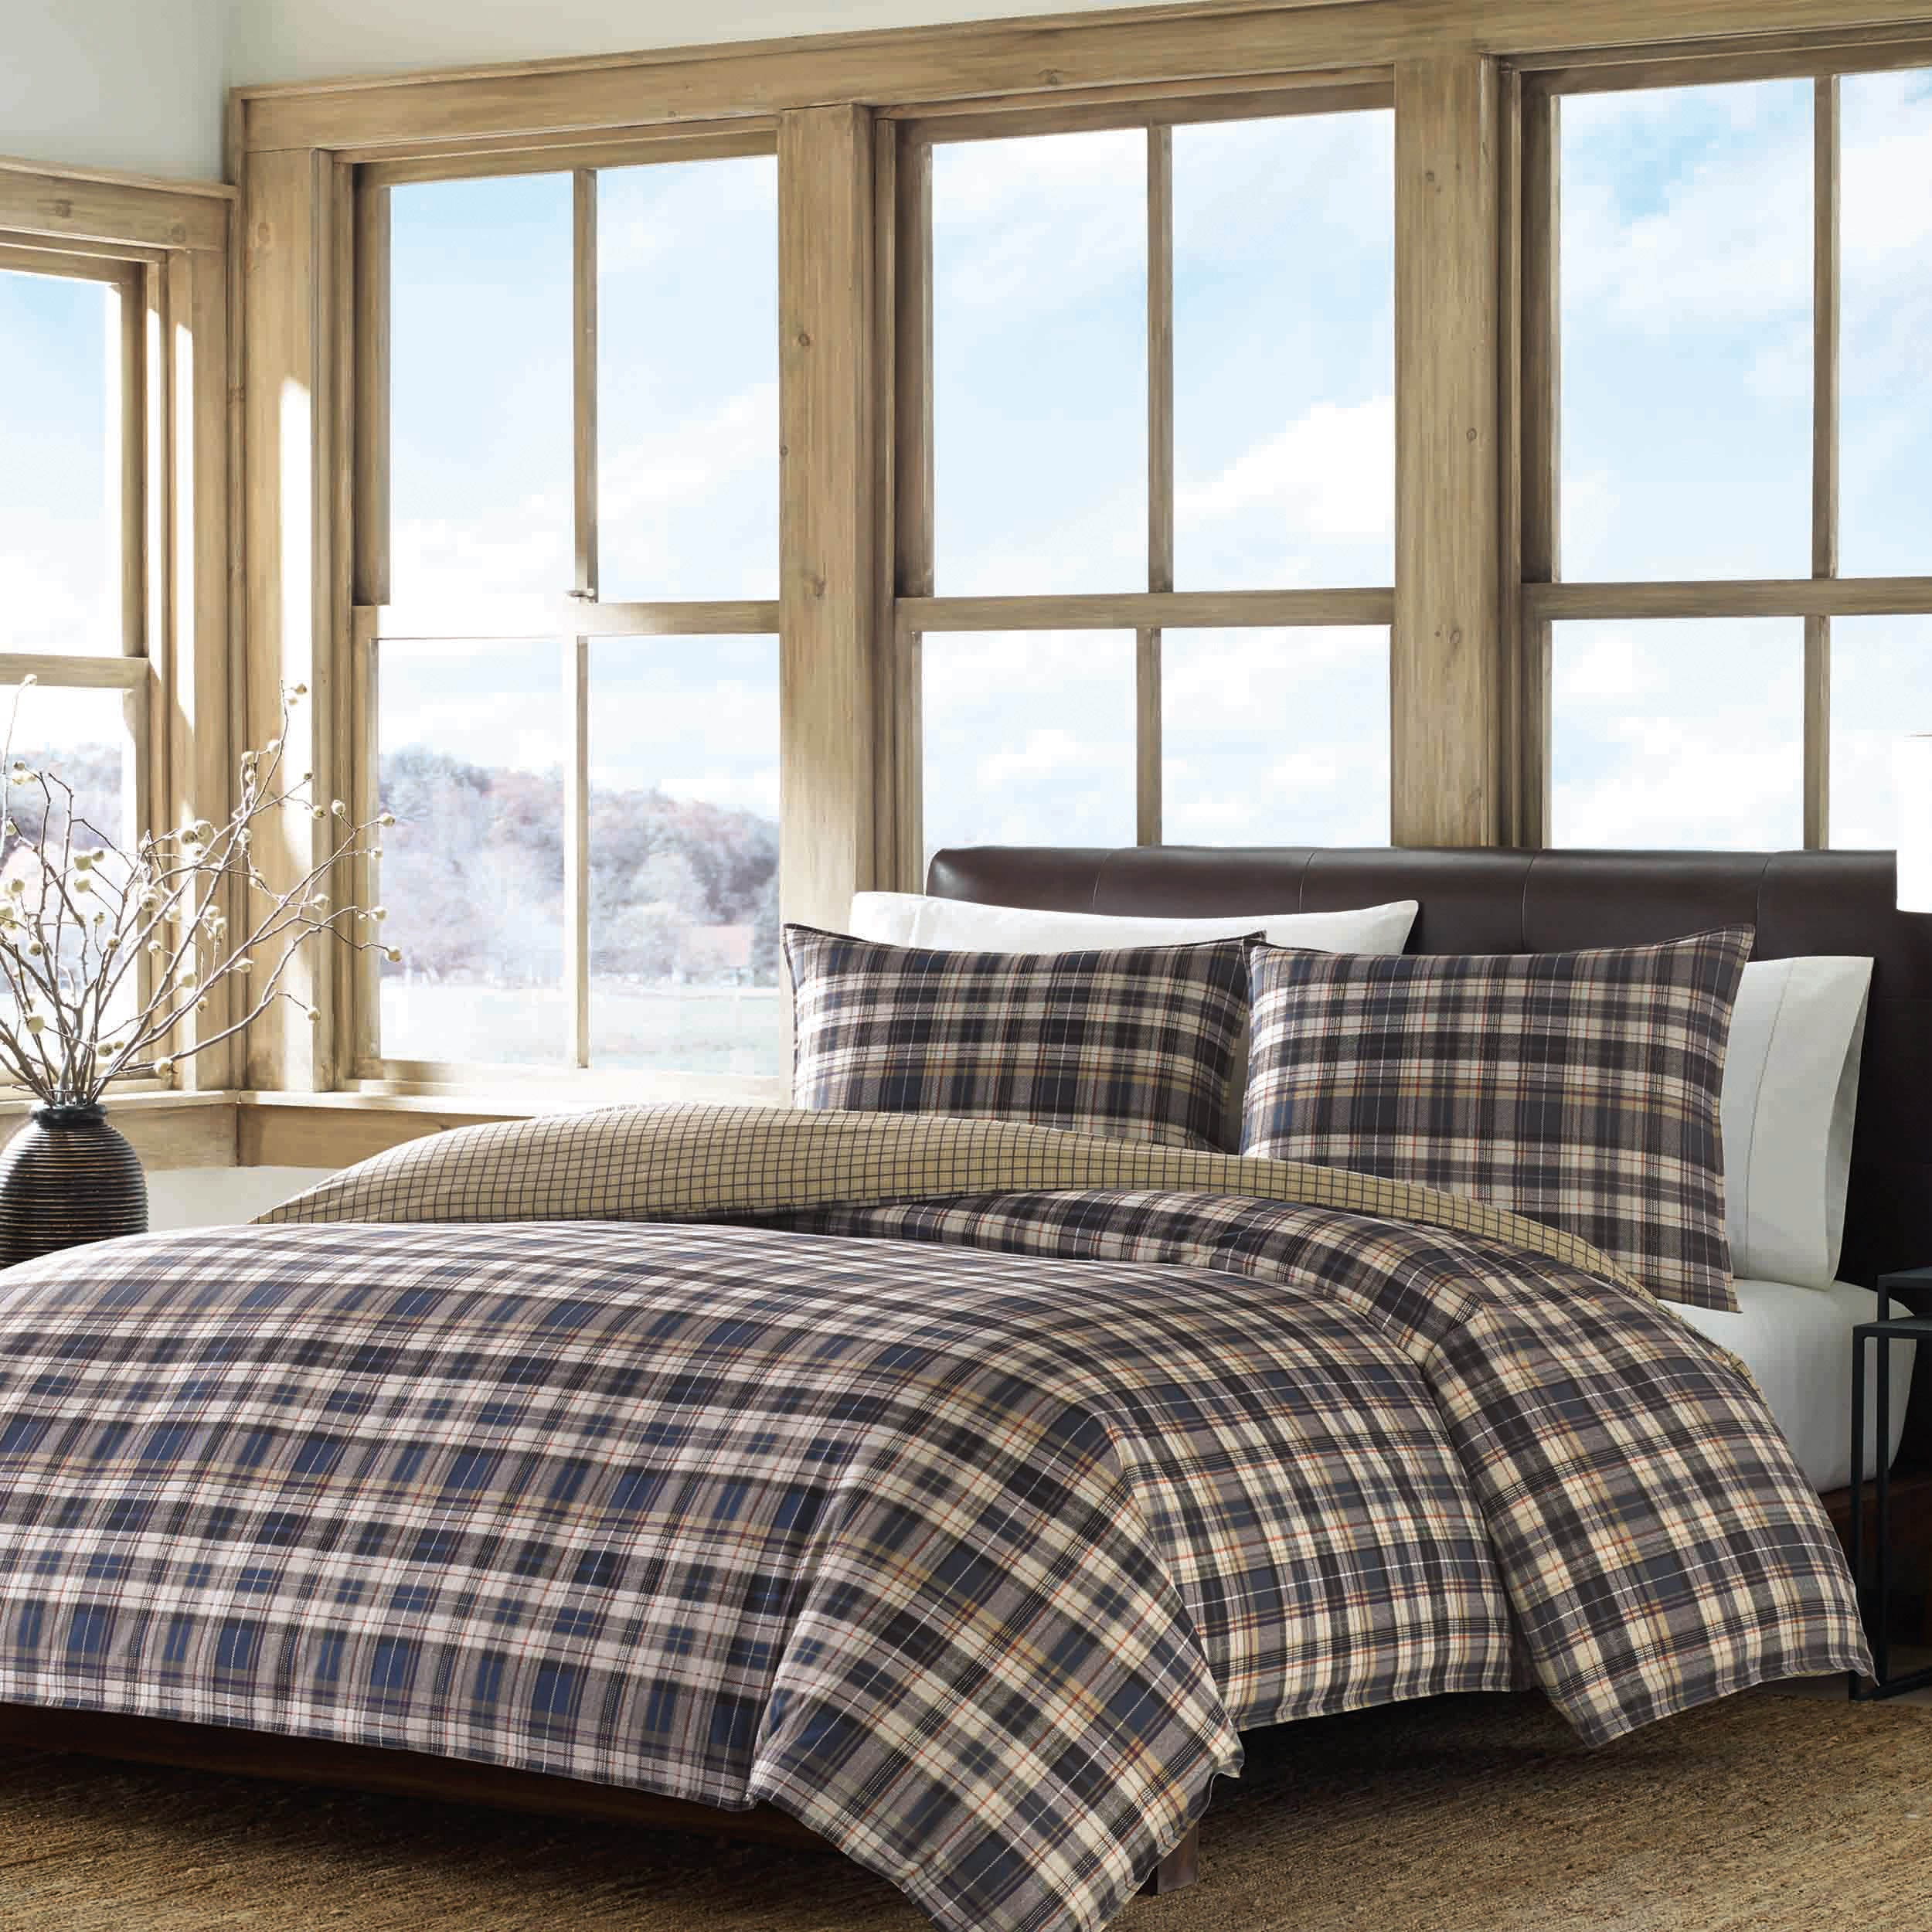 sizes walmart plaid com king ip a set duvet covers mainstays in bag brown bed bedding comforter multiple